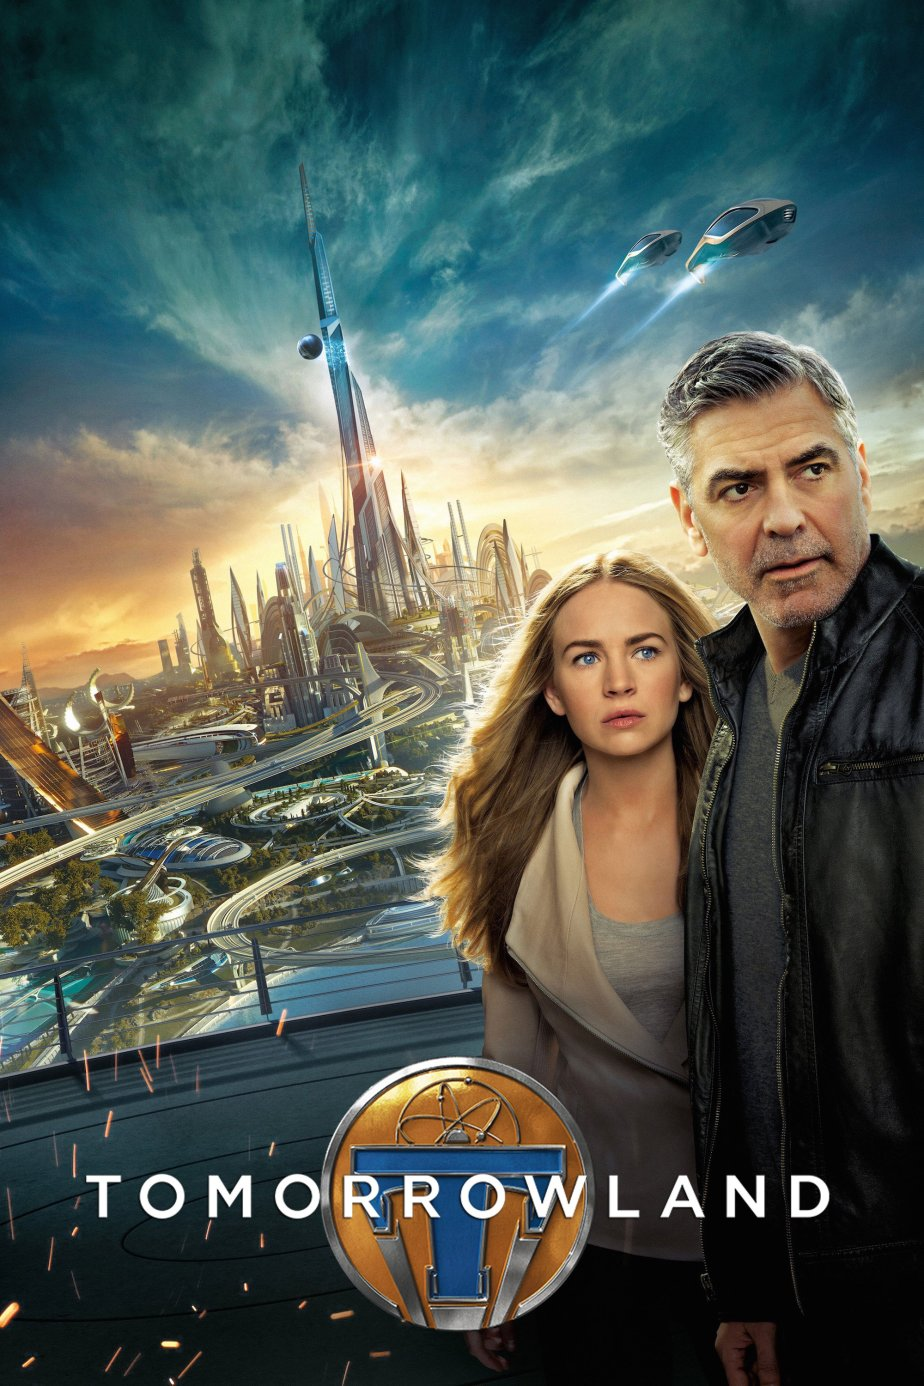 walt-disney-studios-tomorrowland-movie-3-disneyexaminer-2015-game-changers